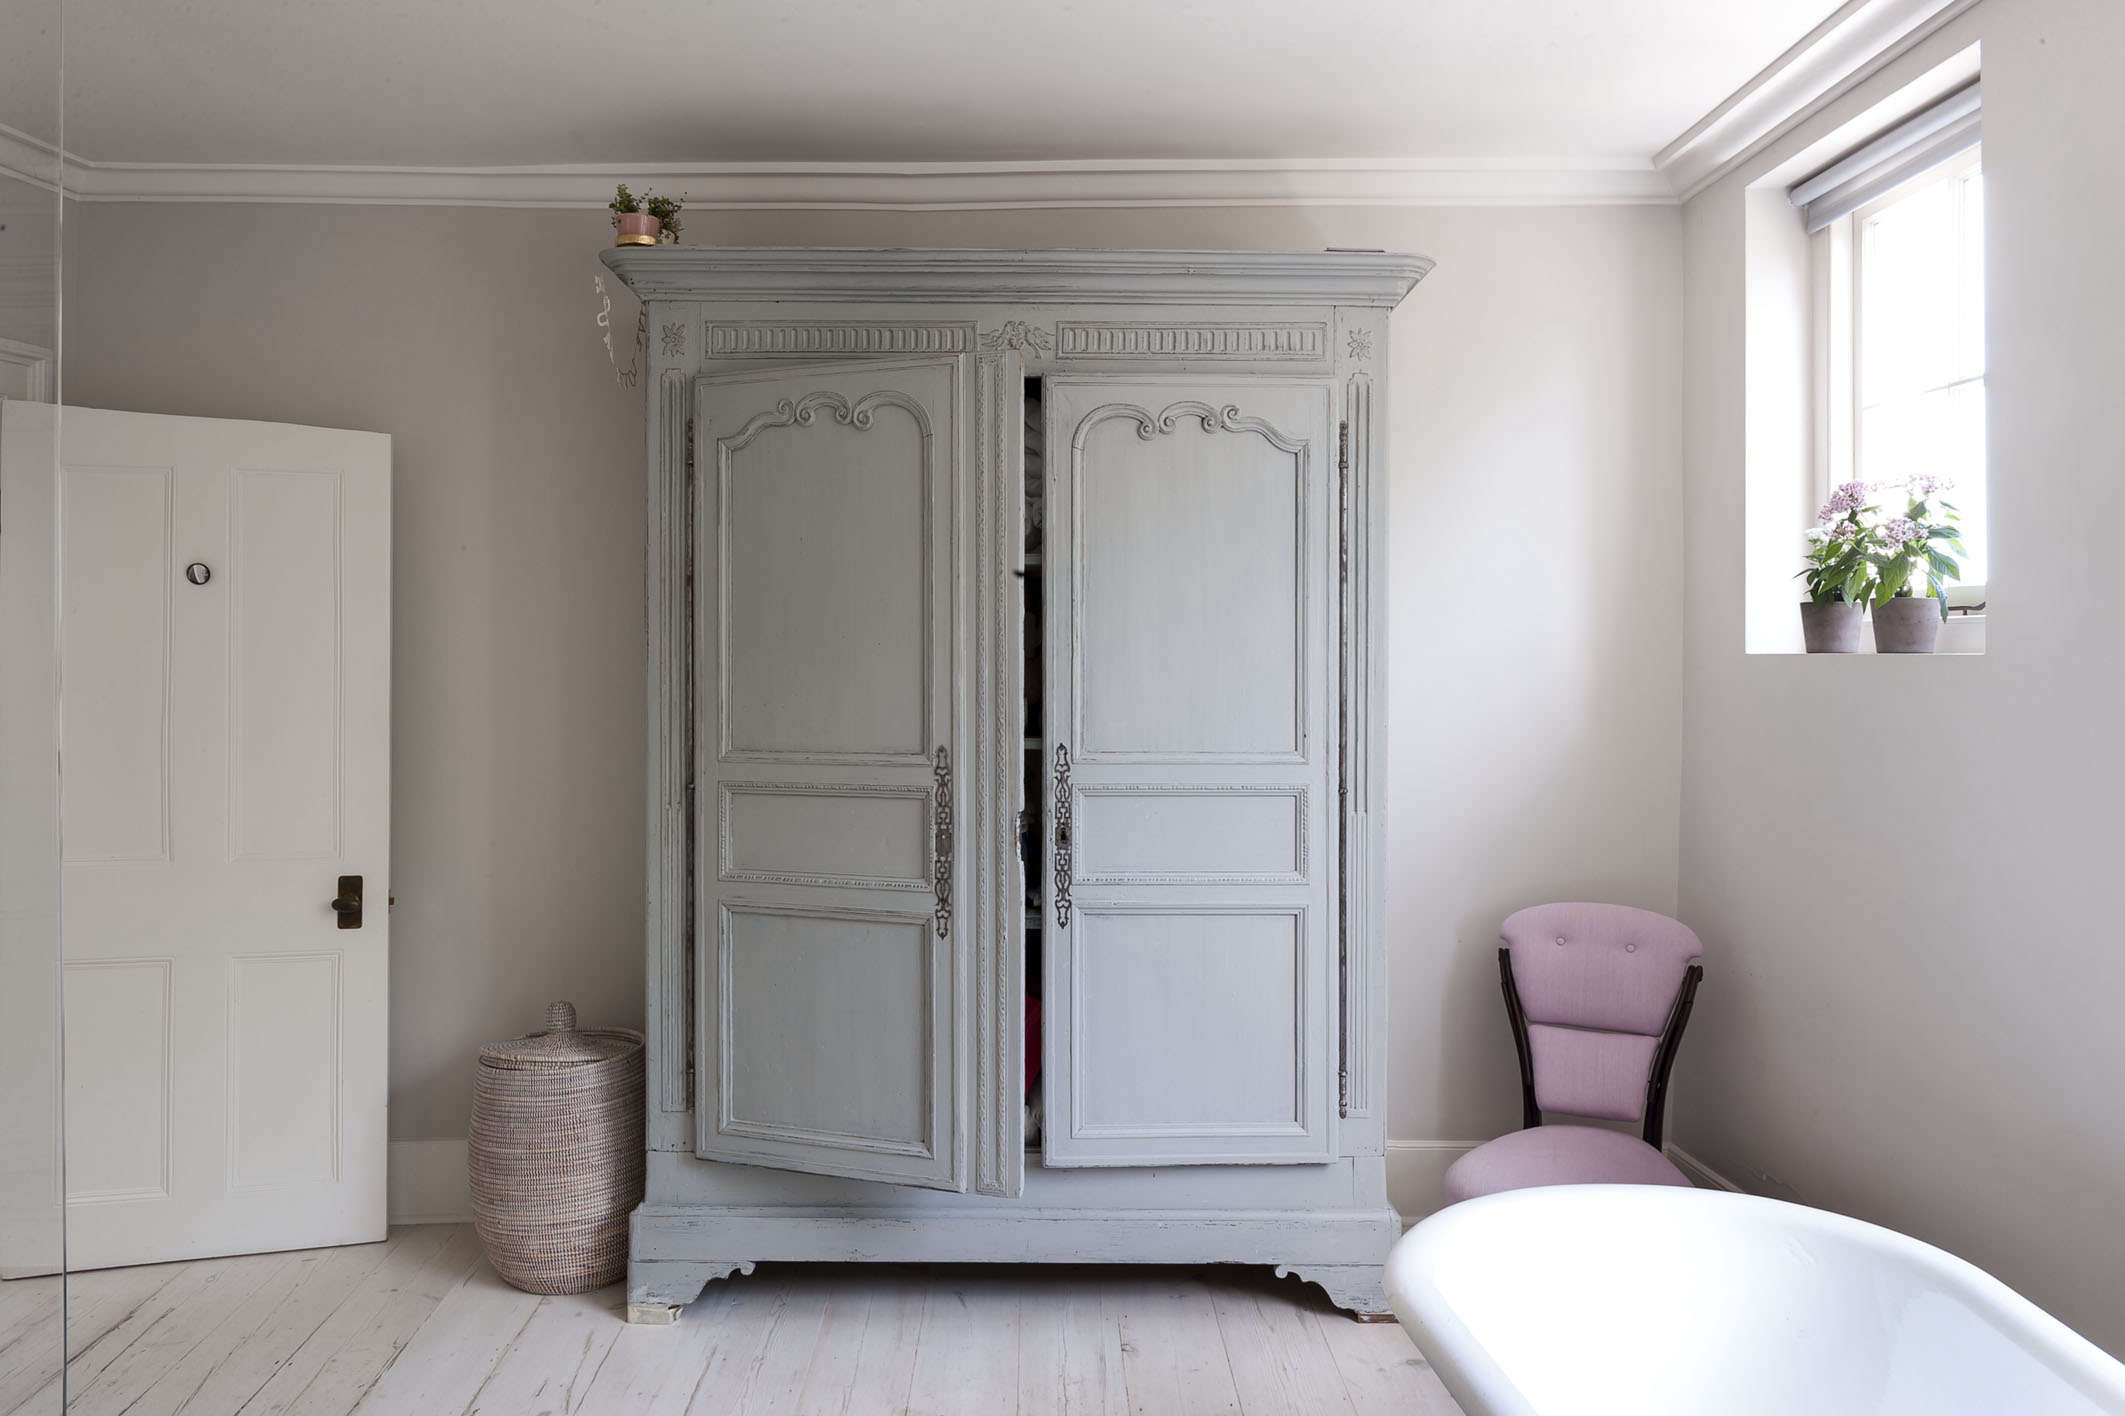 Bathroom of the Week A Romantic London Bath Made from Vintage Parts antiqued blue armoire michelle mckenna bath uk pink chair